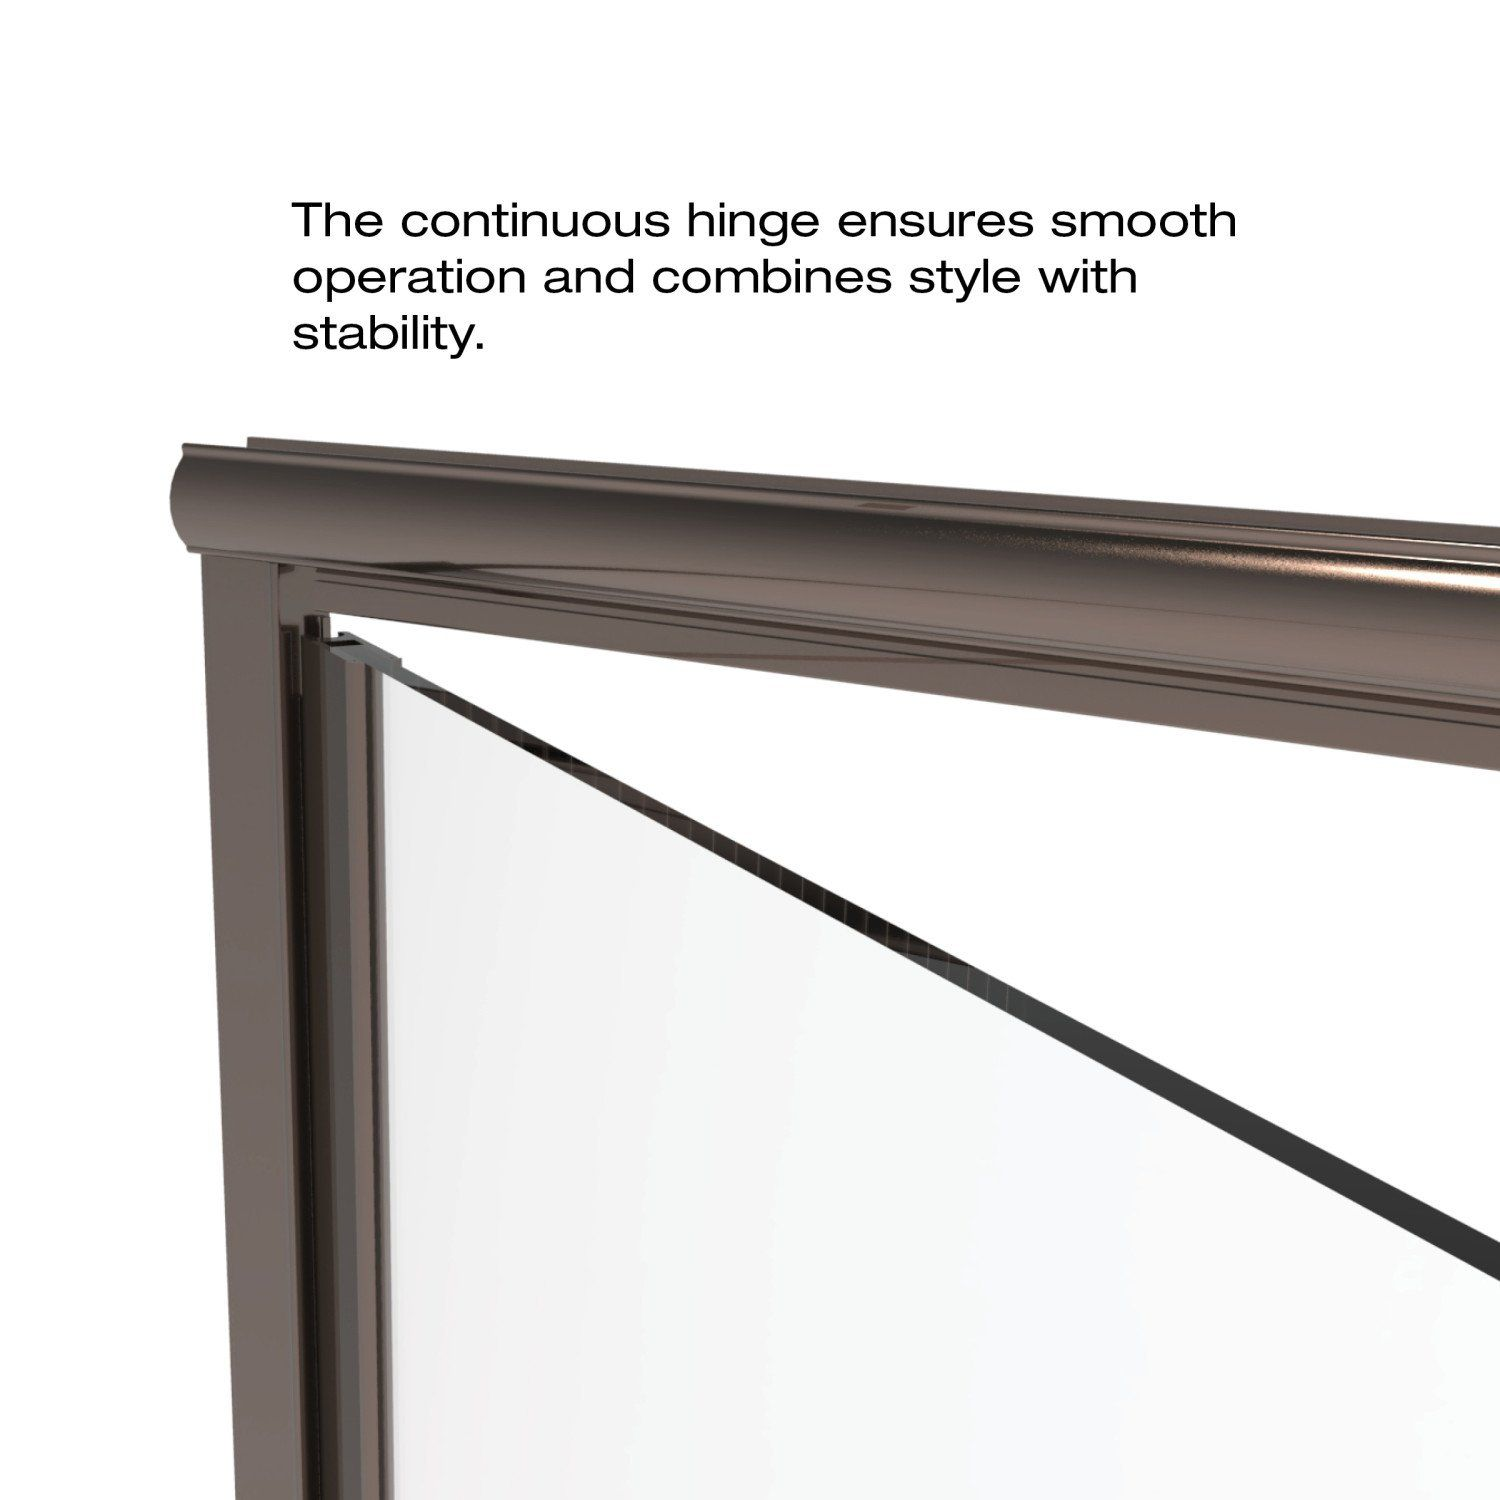 Basco Infinity Shower Door Fits 57 58 Inch Opening Aquaglidexp Clear